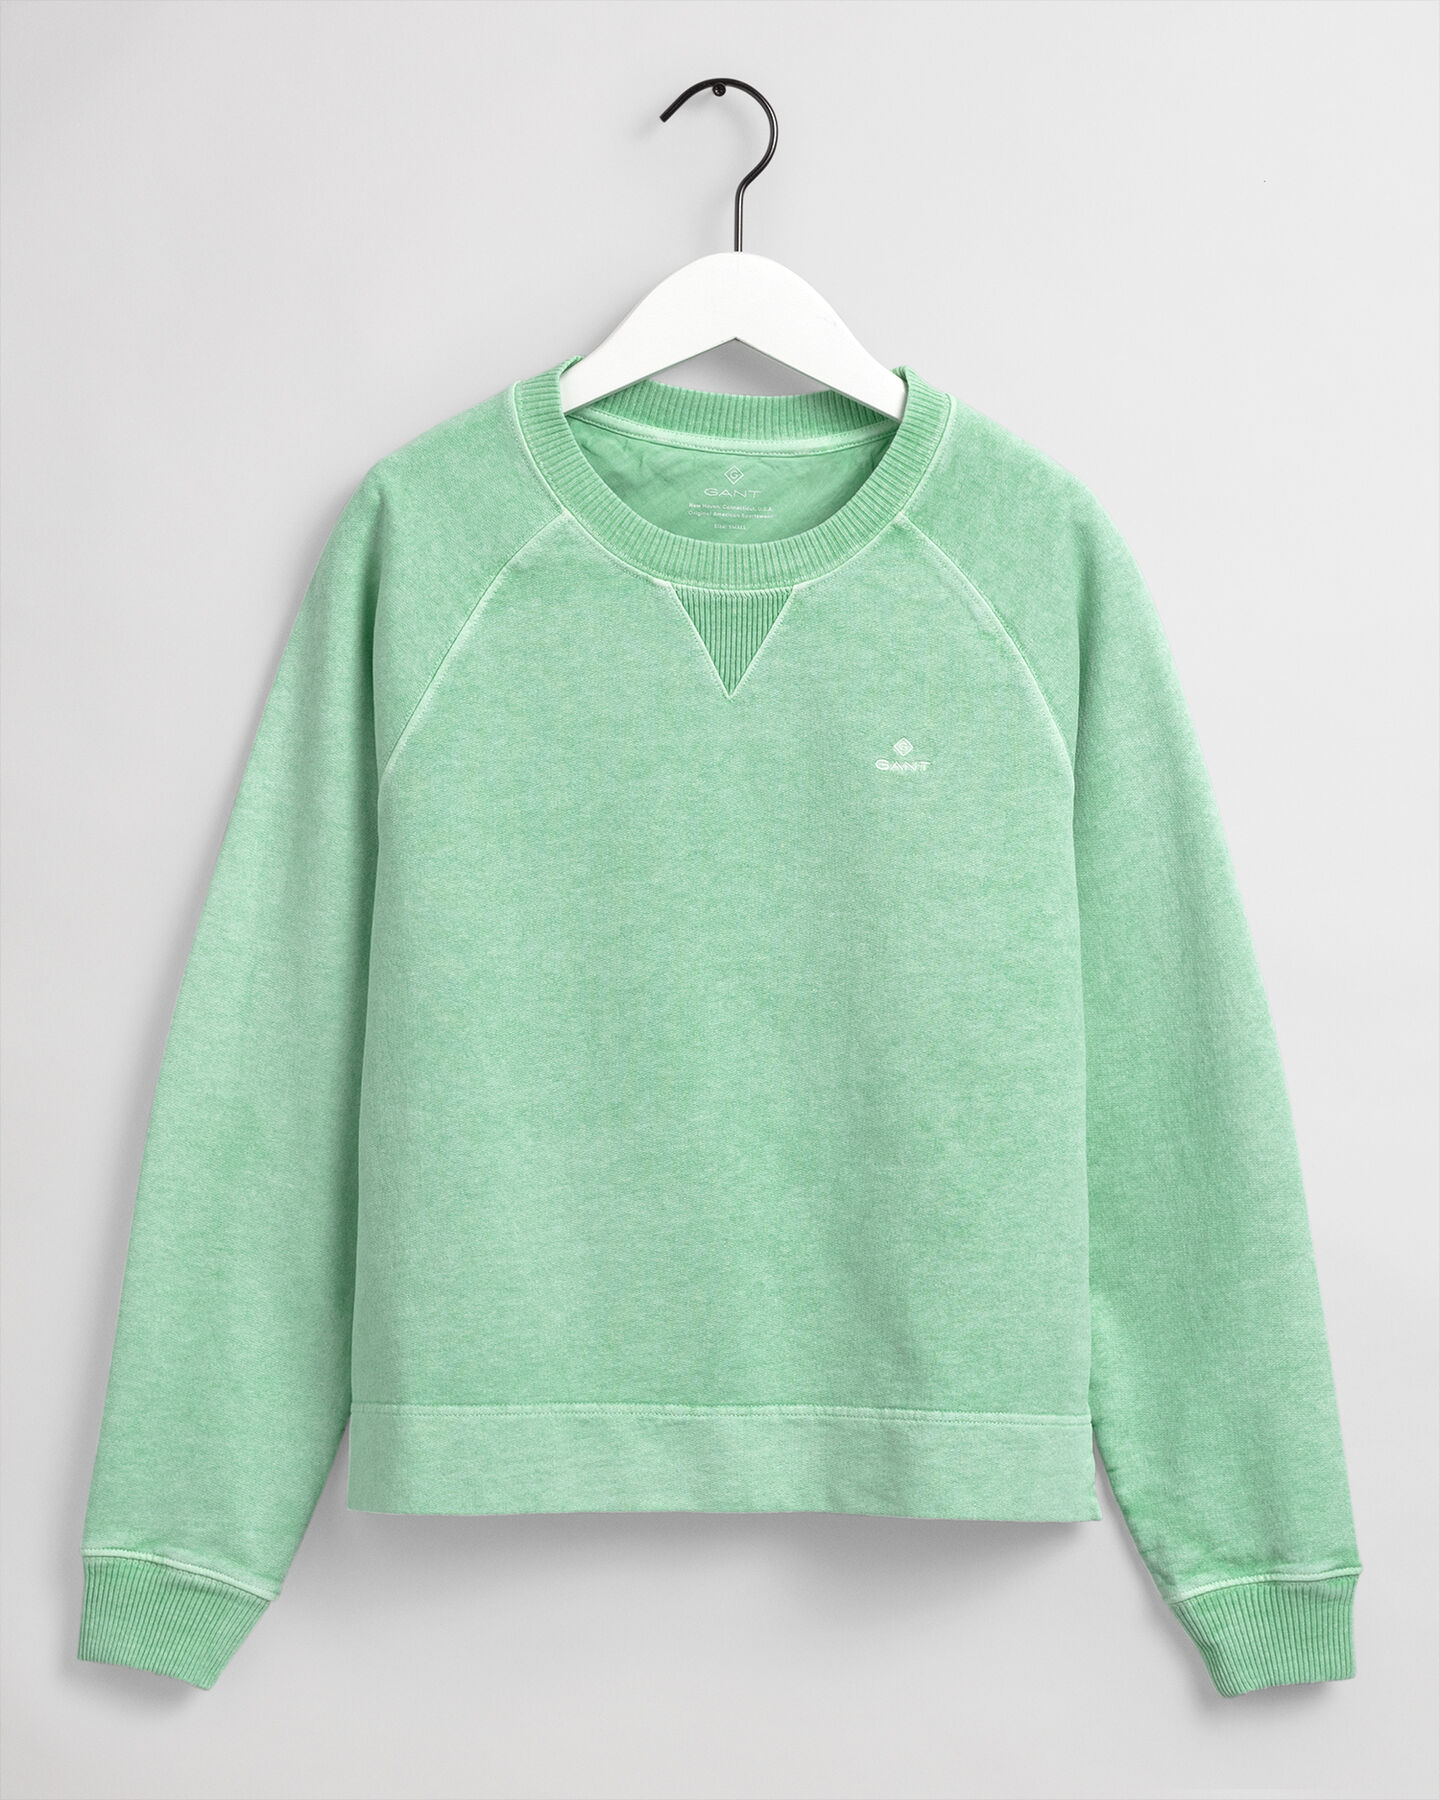 Sunfaded Rundhals-Sweatshirt